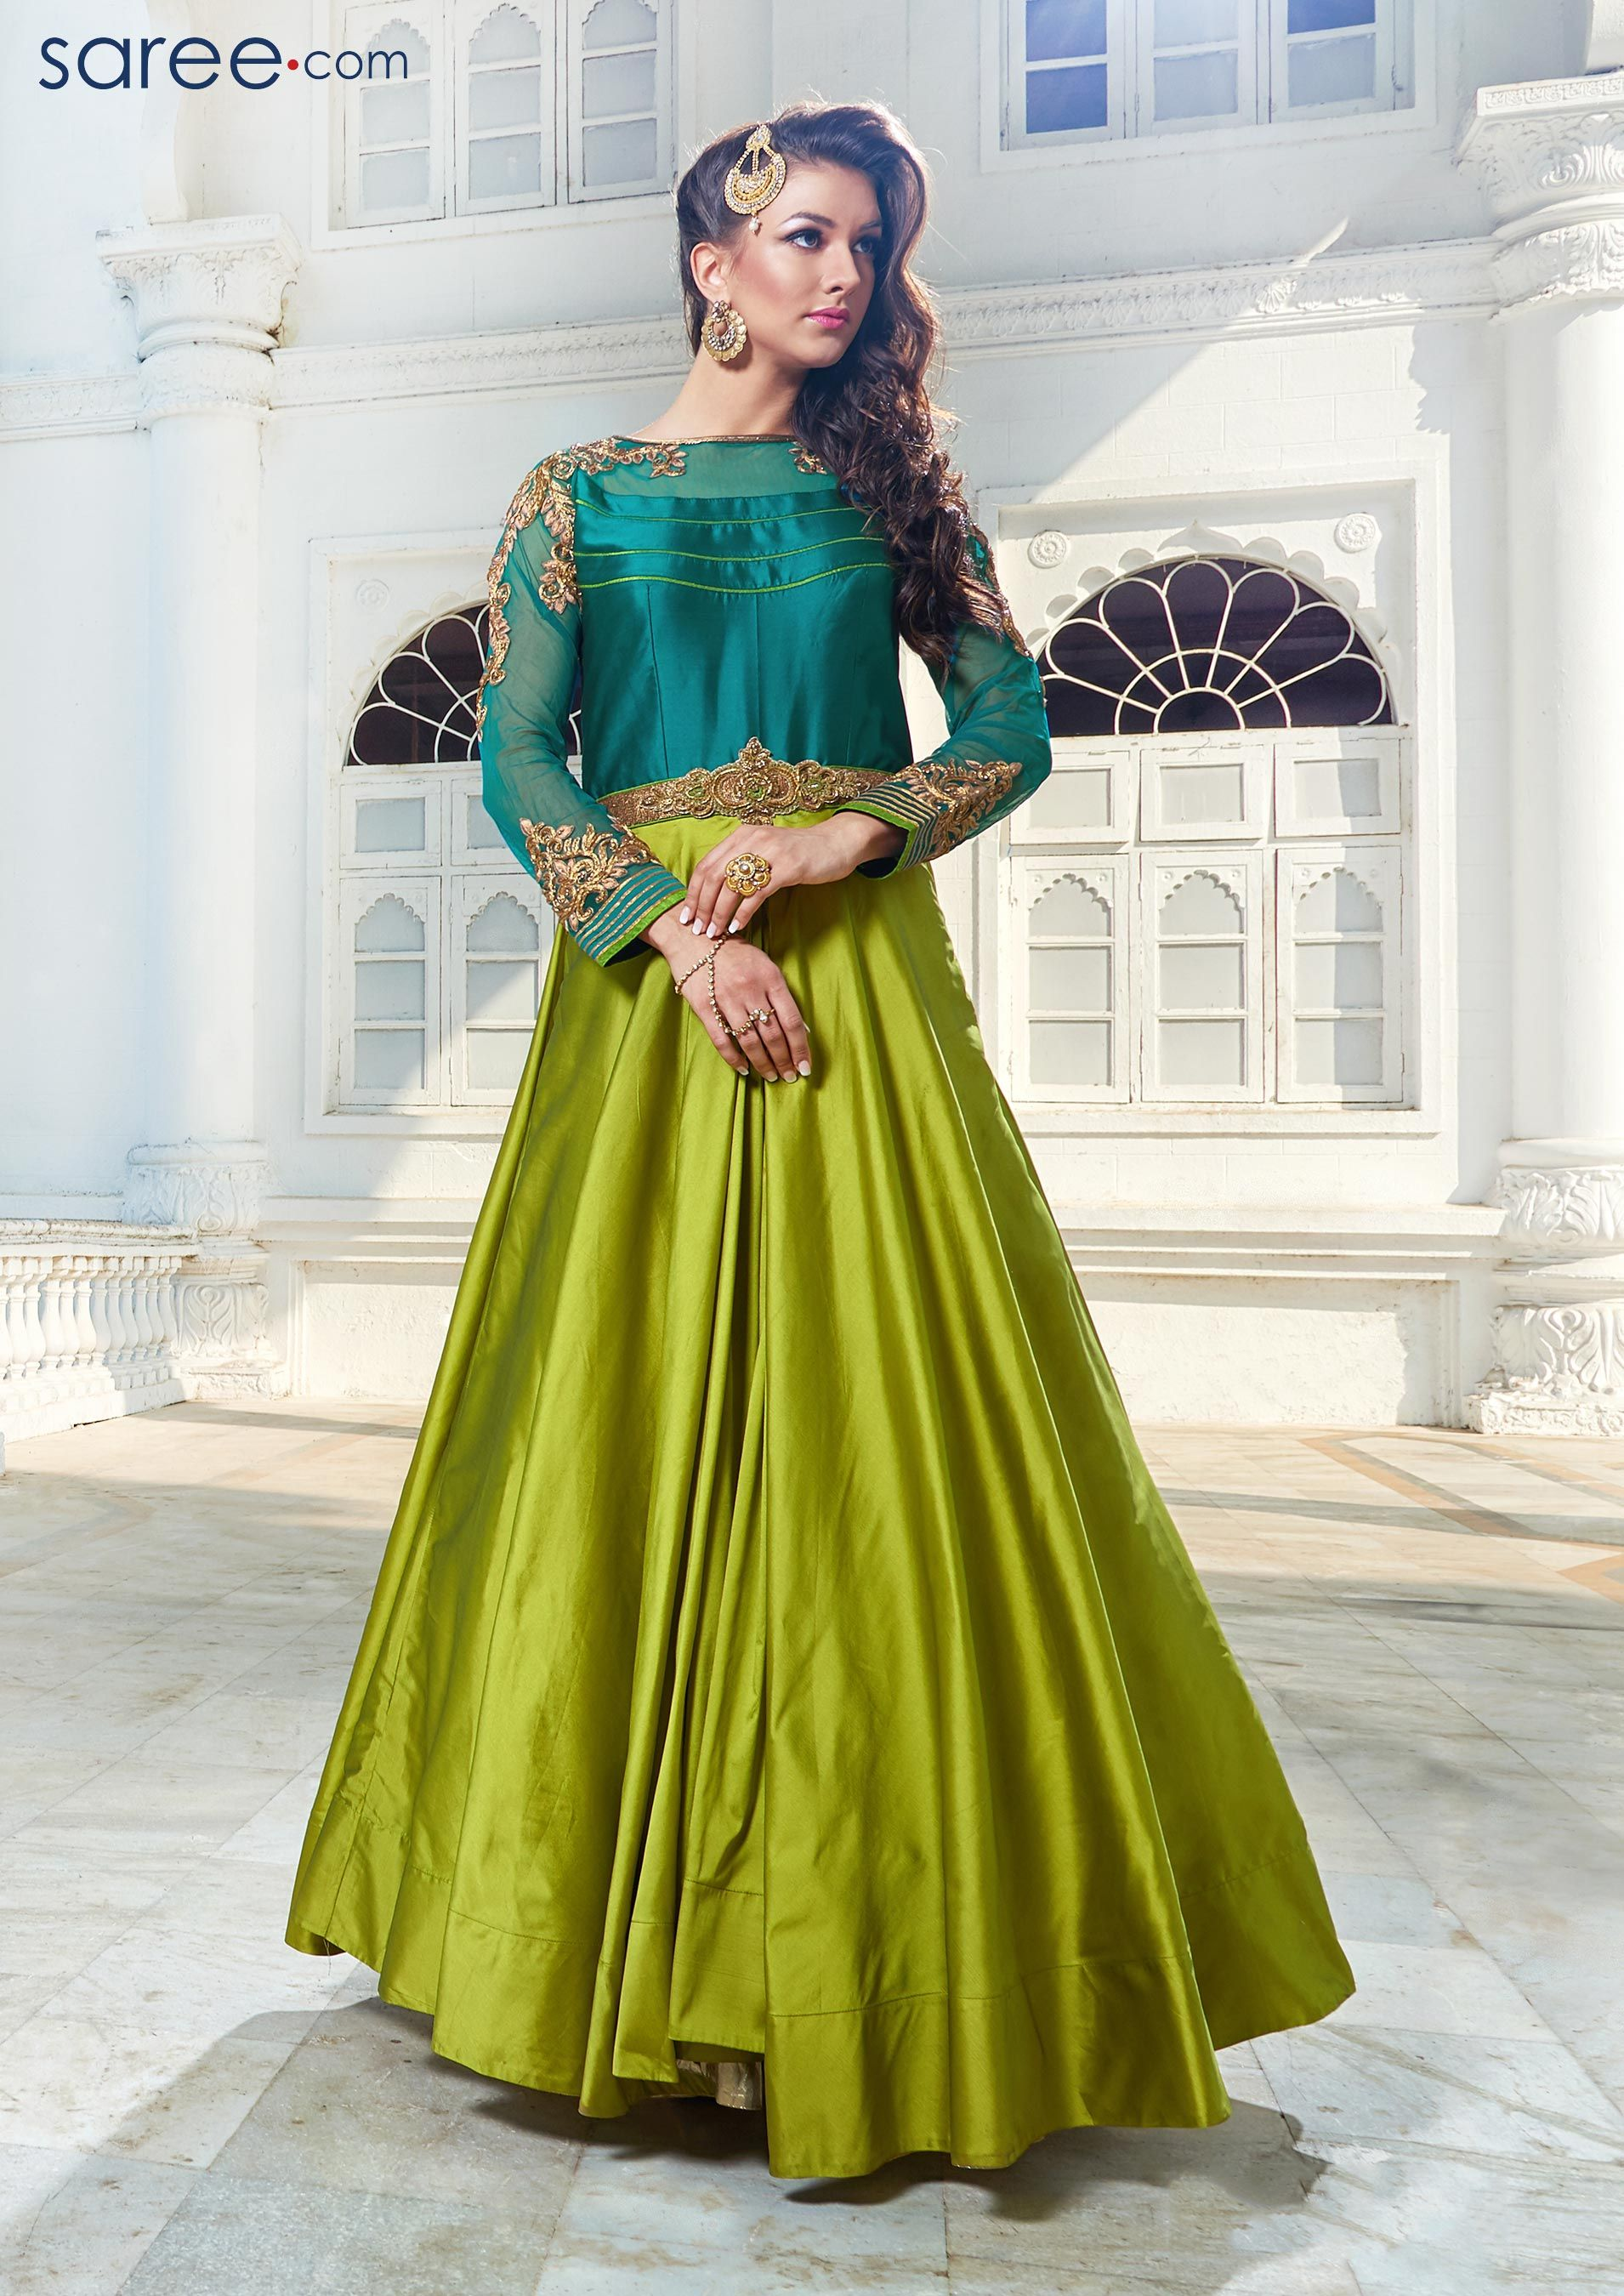 5c9d2d4514 GREEN AND SEA GREEN TAFFETA SILK GOWN WITH CUTDANA WORK